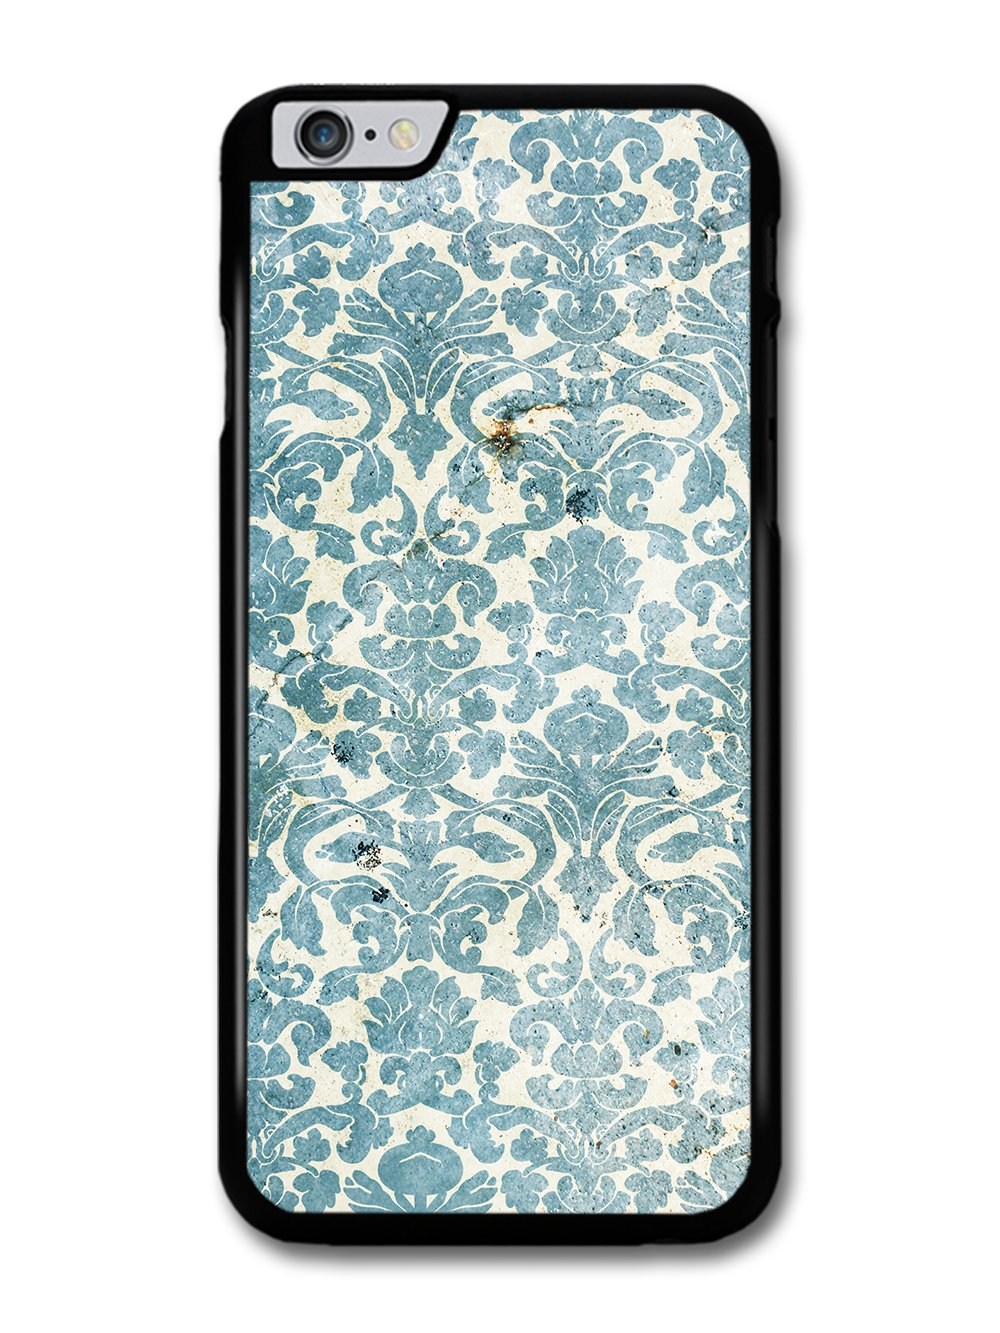 Cool Hipster Vintage Wallpaper Pattern In Turquoise Wallpaper 1000x1333 Wallpaper Teahub Io